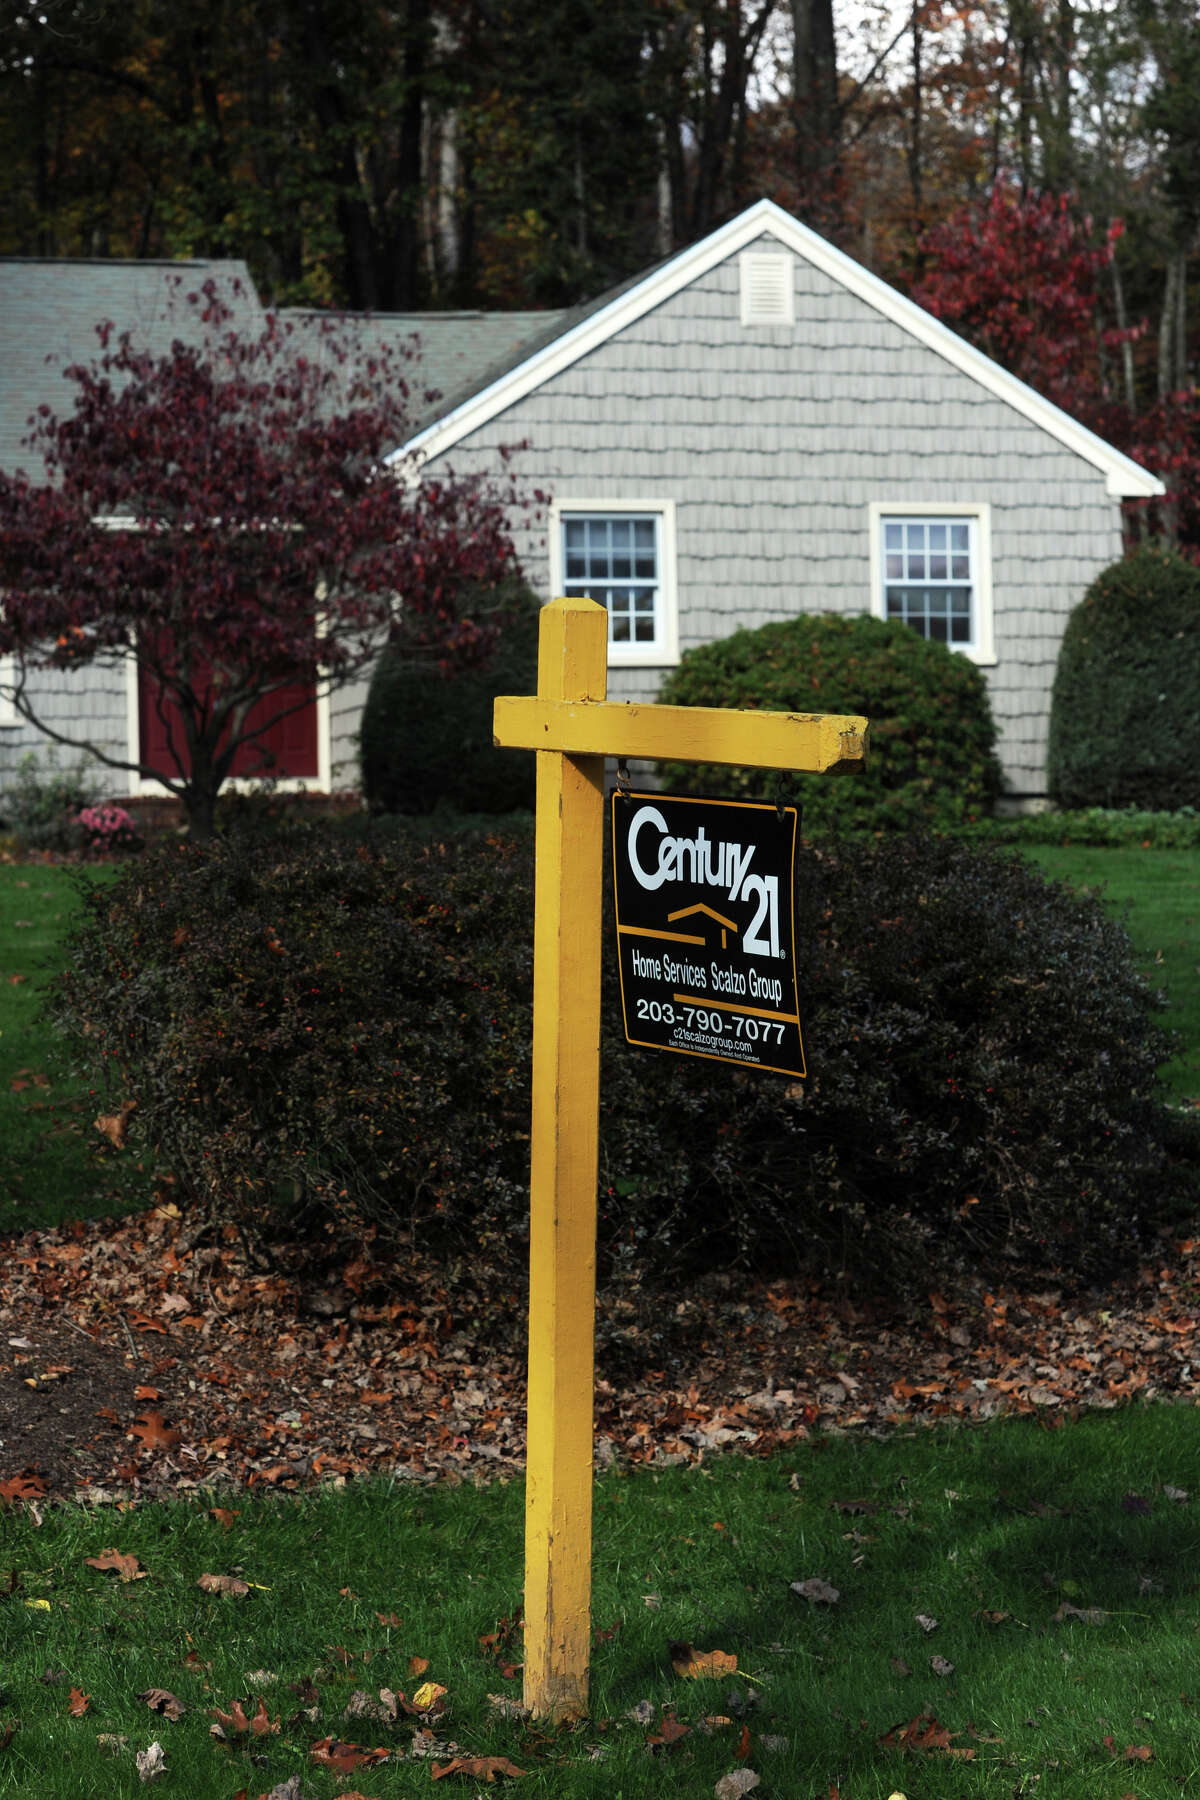 A home for sale on Patricia Lane, in Newtown, Conn. Oct. 30, 2014.